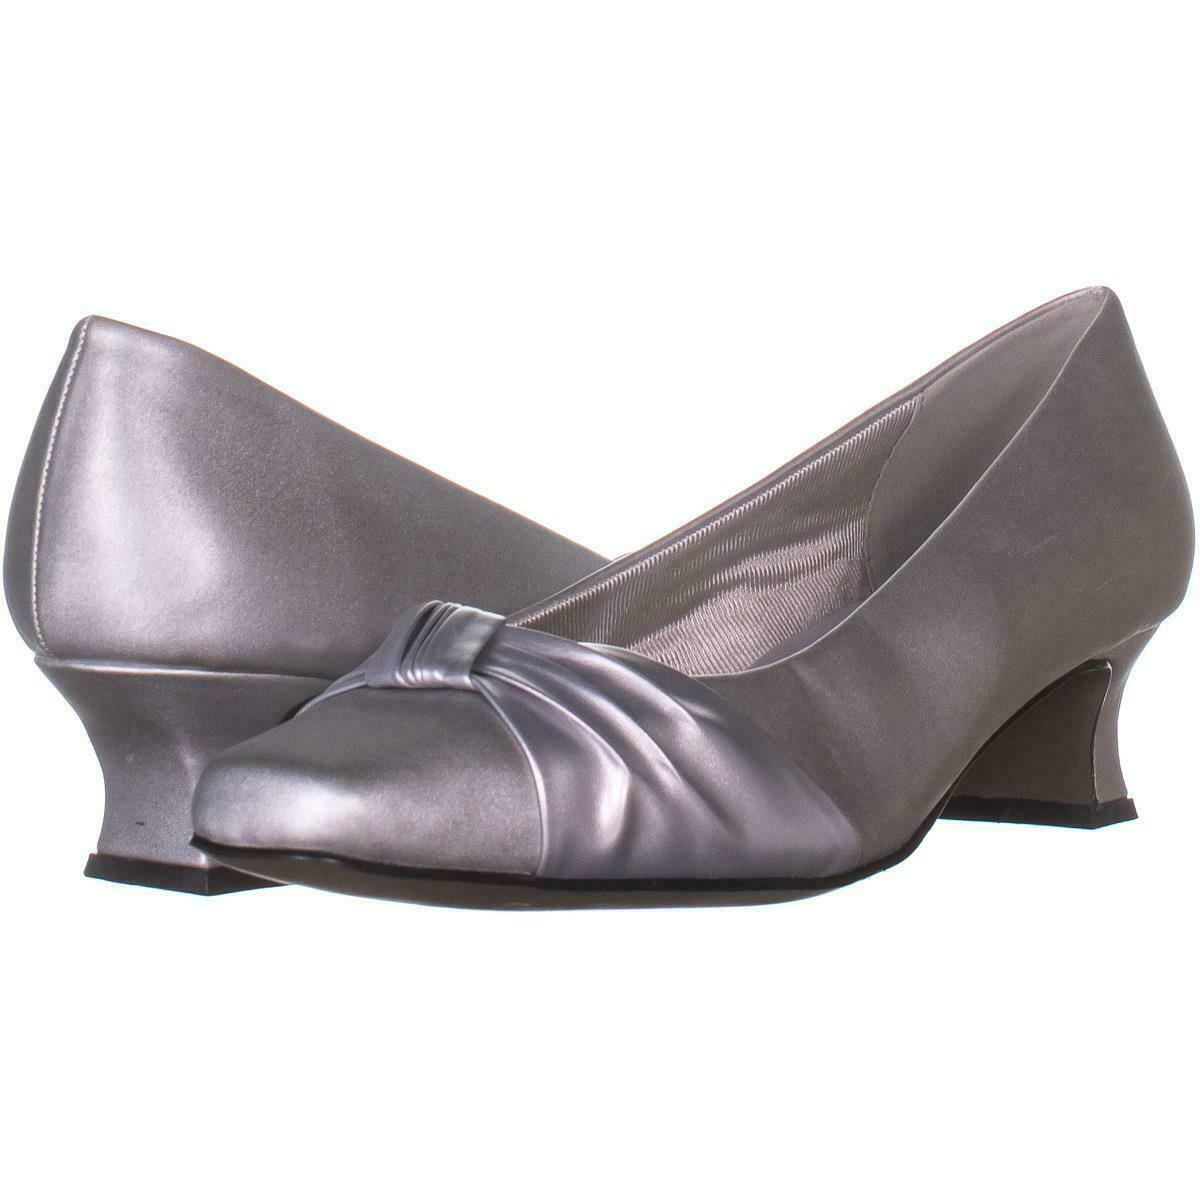 Primary image for Easy Street Waive Kitten Pump Heels 267, Silver, 7.5 W US